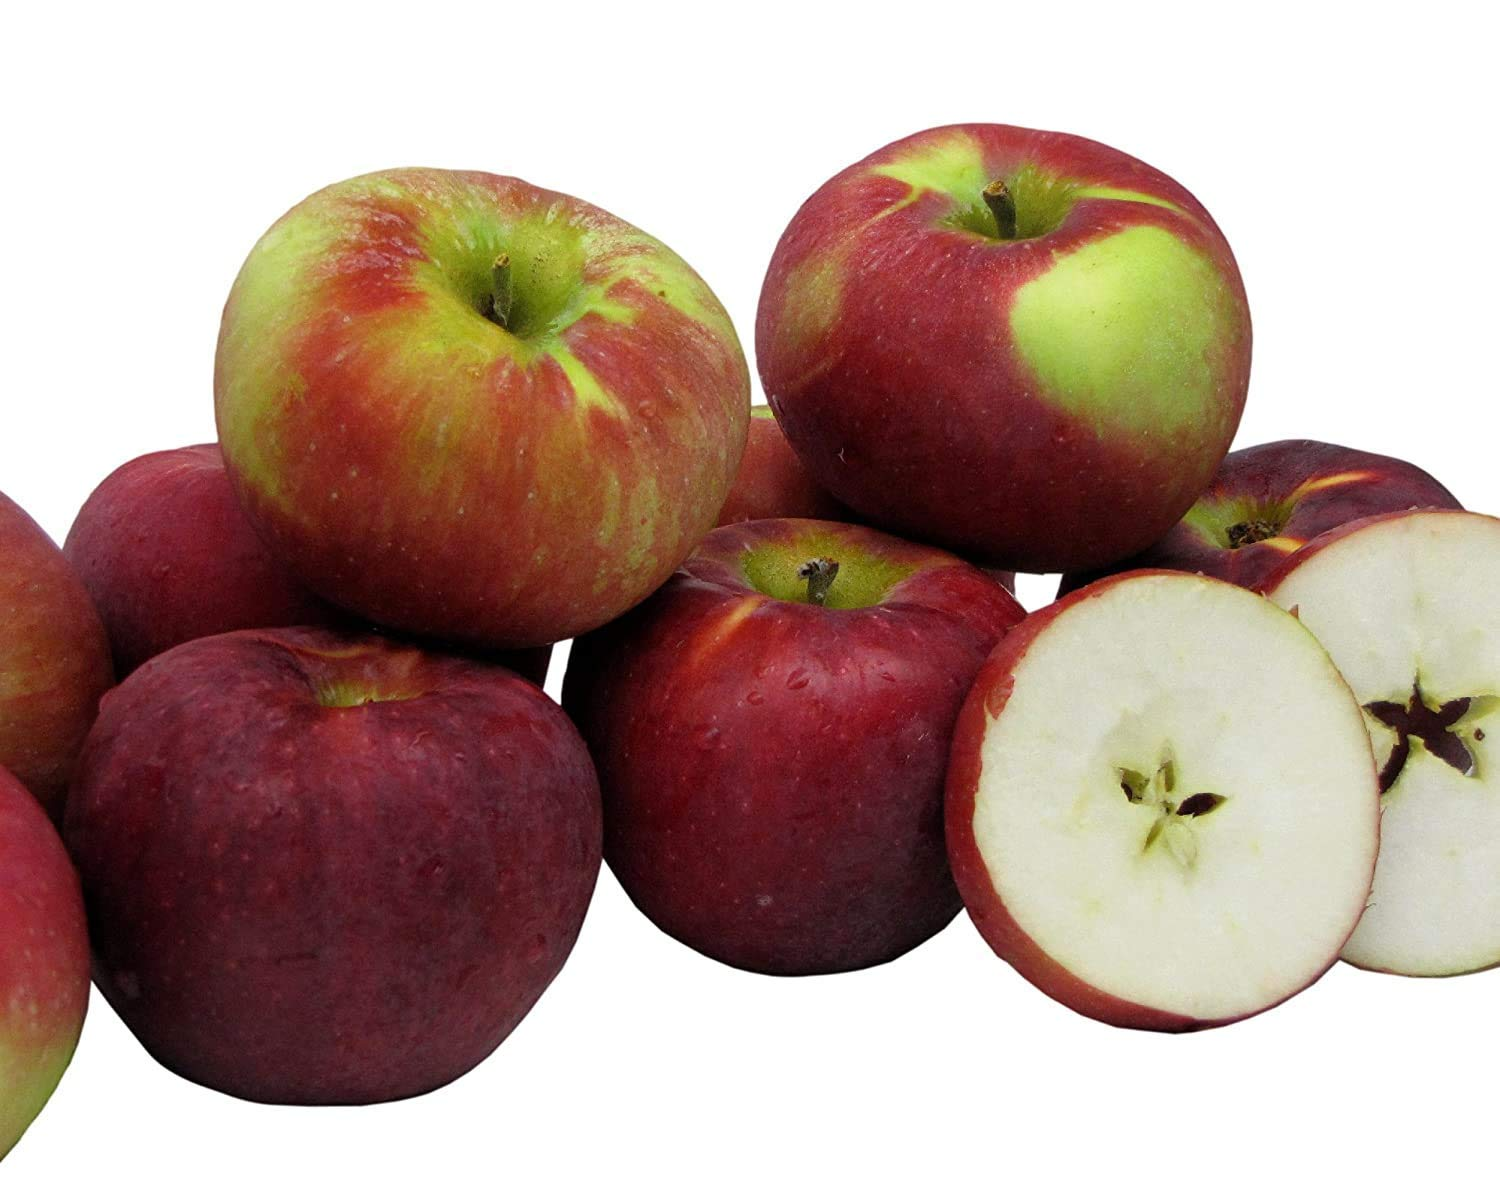 Kauffman Orchards Cortland Apples, Fresh-Picked and Sun-Ripened (Box of 16)